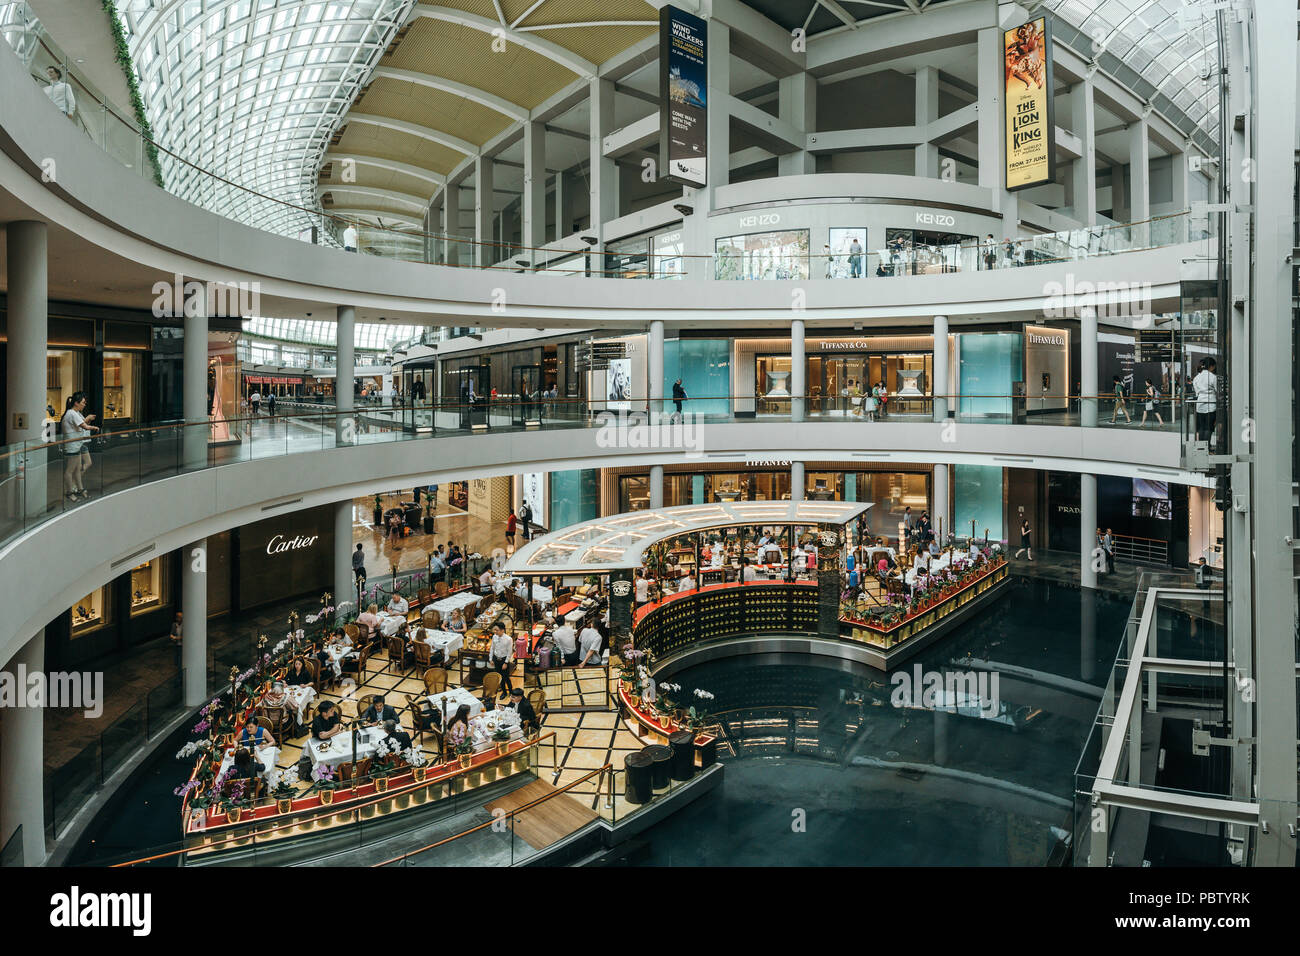 Luxury cafe interior in Marina Bay Sands shopping mall. Singapore - Stock Image